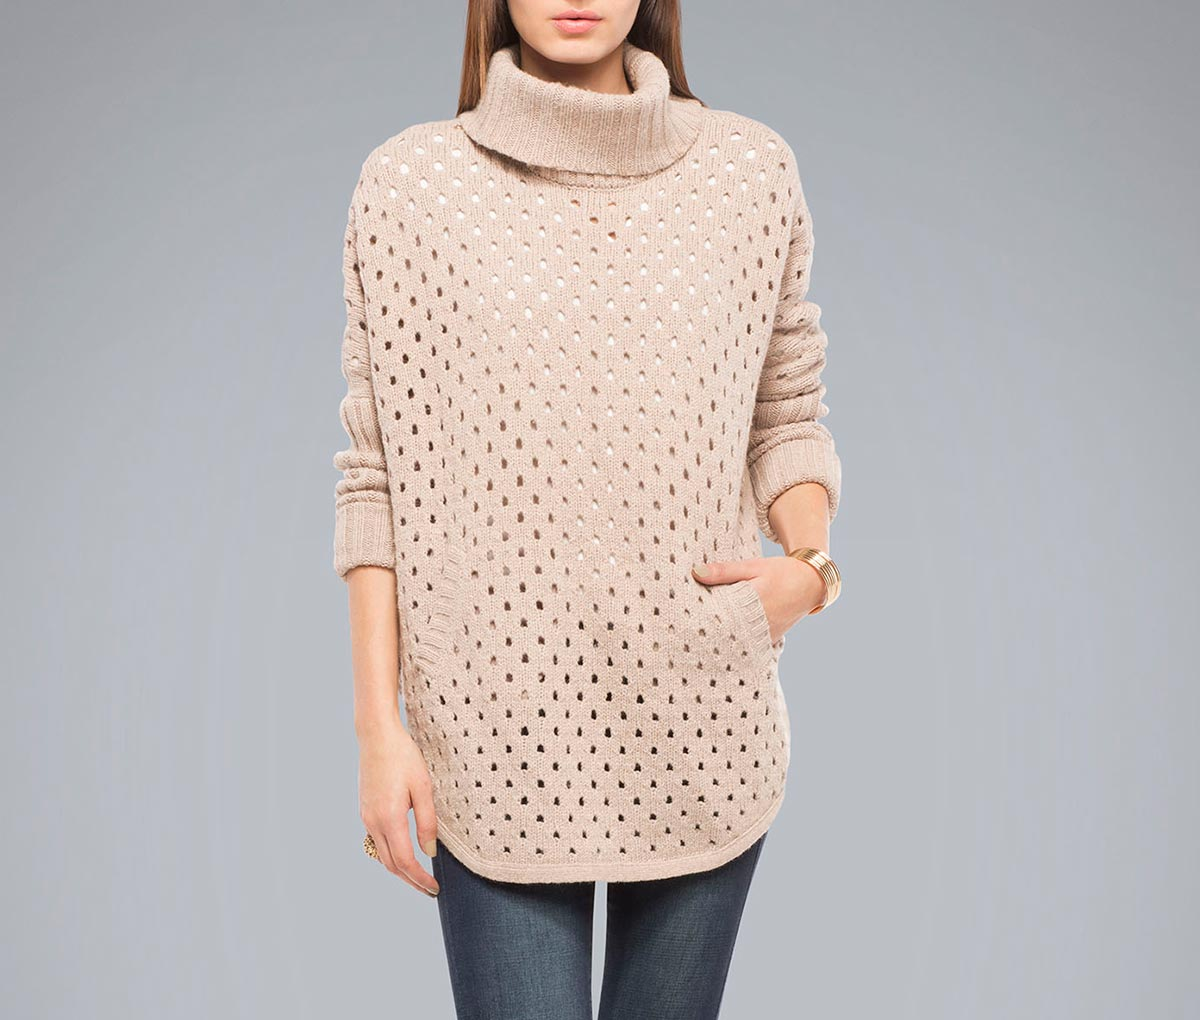 falabella-ponchos-sweaters-fashion-diaries-9